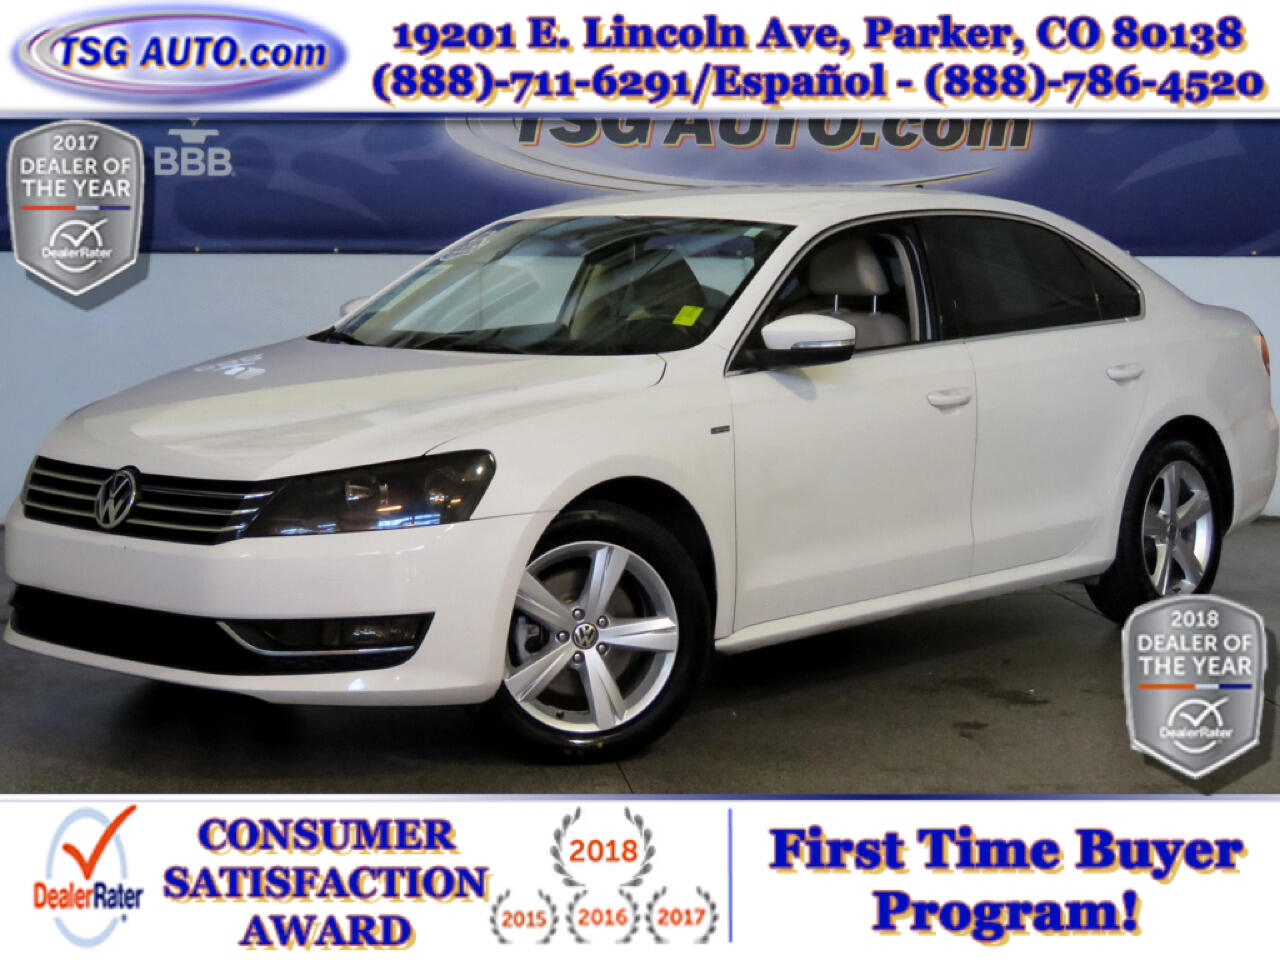 2015 Volkswagen Passat Limited Edition 1.8L I4 Turbo W/Leather